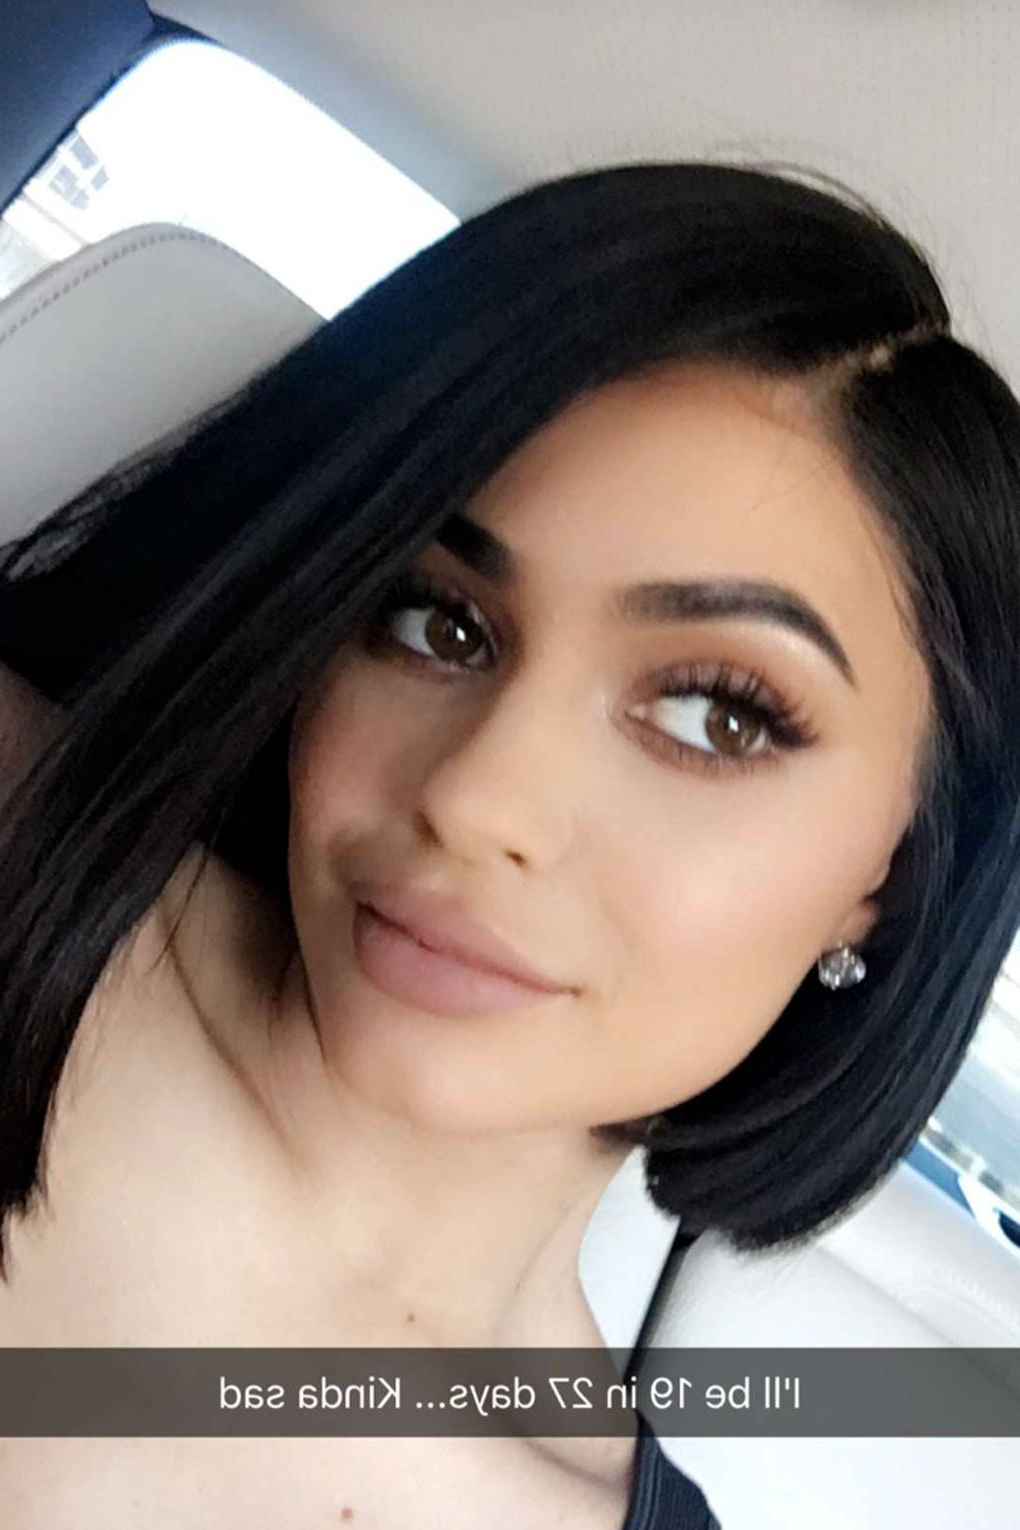 Kylie Jenner Short Hair Bob Haircut Pictures 2016 | Glamour Uk For Kylie Jenner Short Haircuts (View 12 of 25)